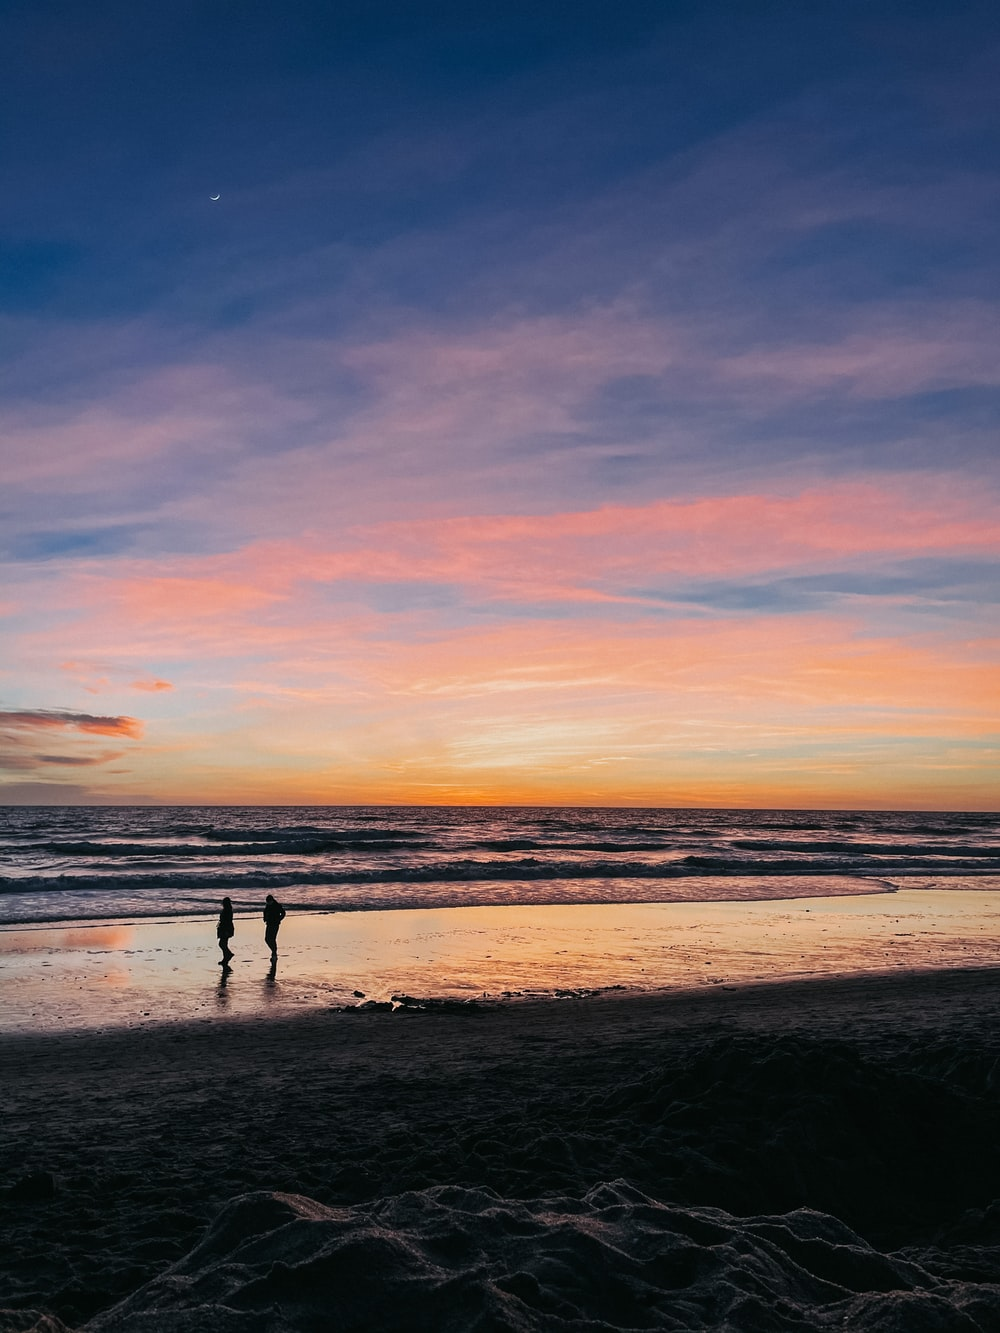 silhouette of 2 people walking on beach during sunset